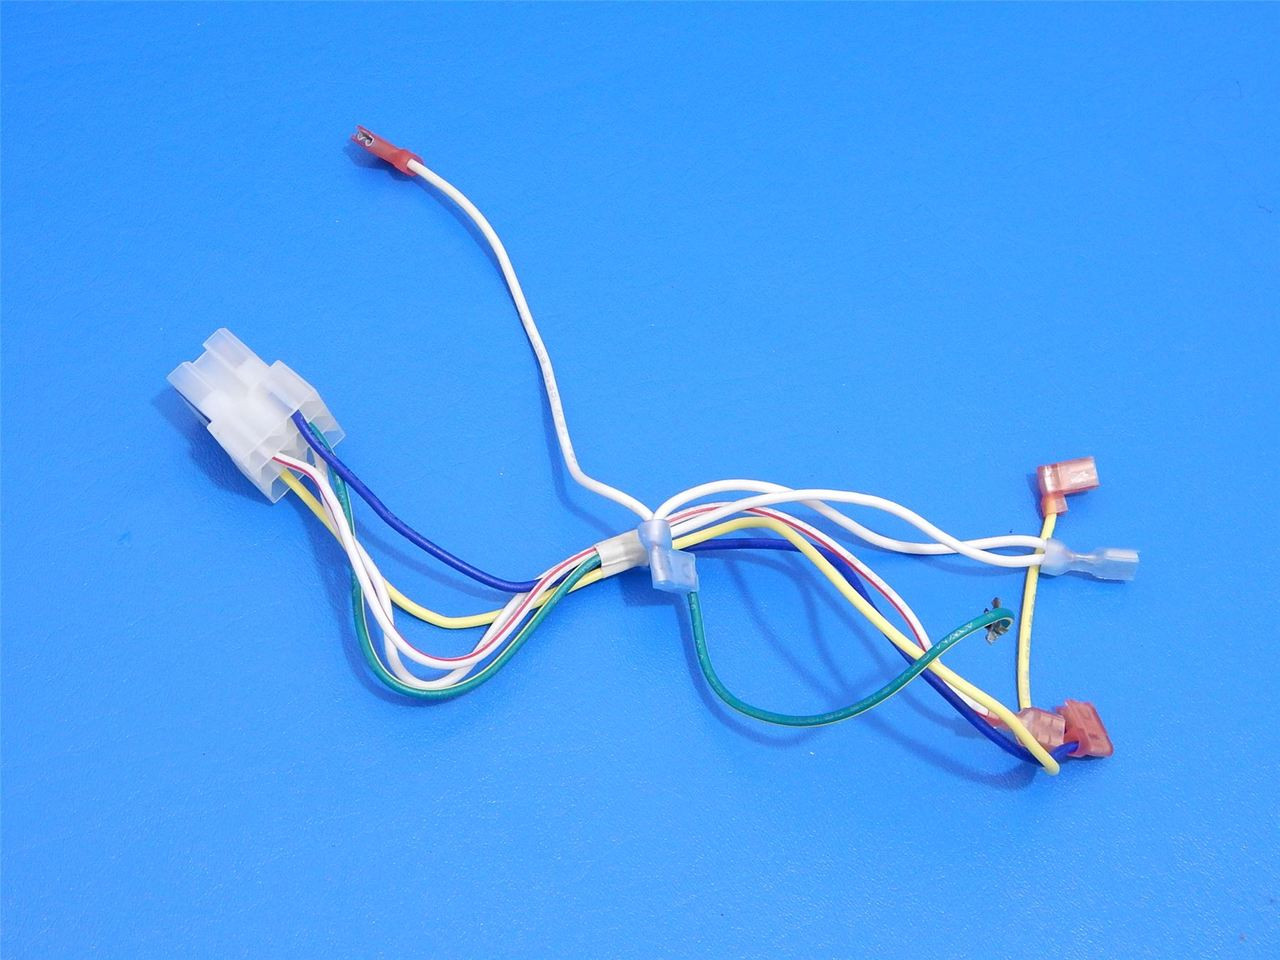 kitchenaid sxs refrigerator ksrs25qgwh01 ice dispenser auger motor wire harness ice cold beer appliance parts [ 1280 x 960 Pixel ]